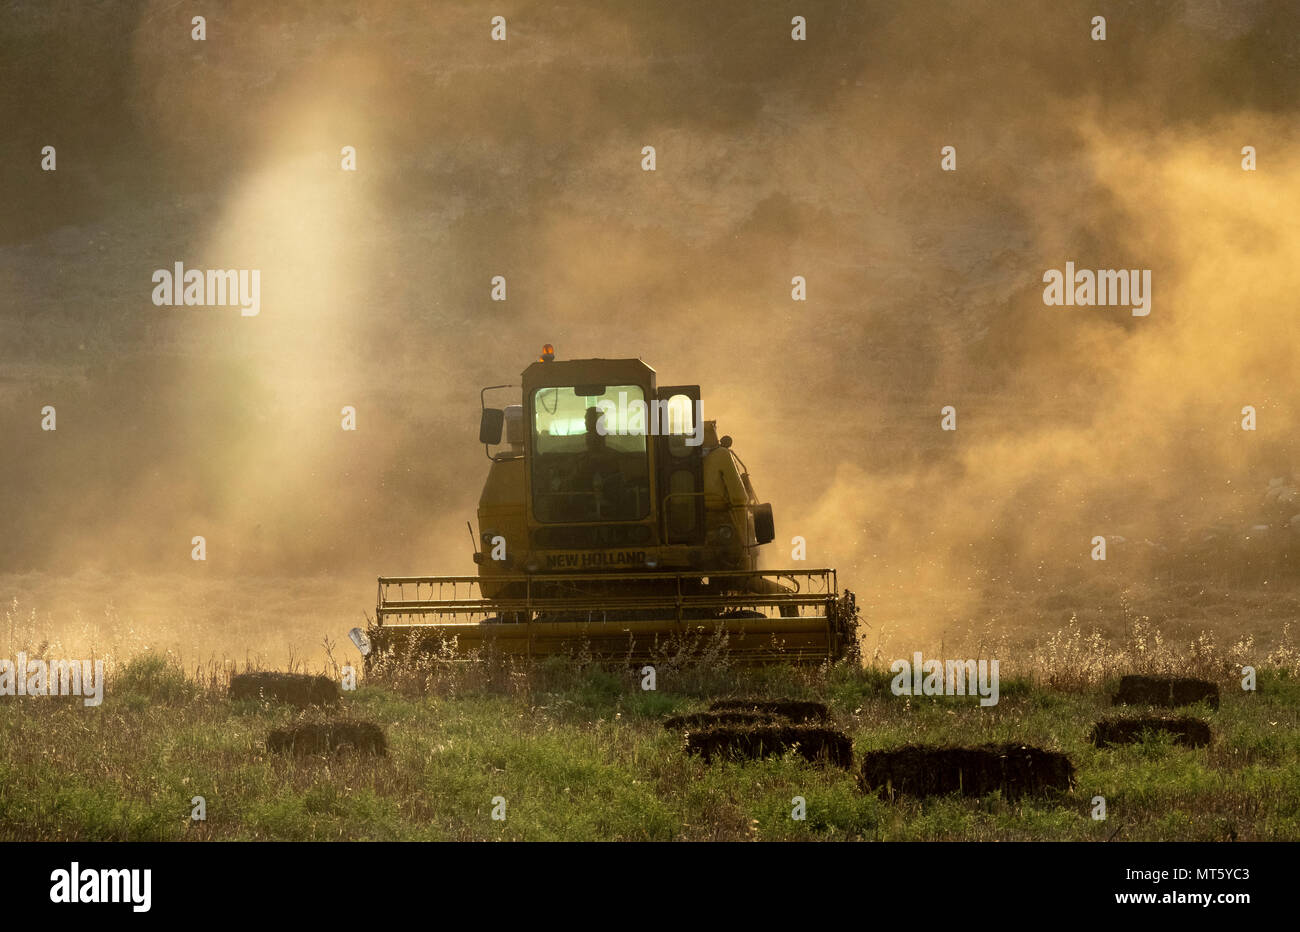 A New holland combine harvester working in a field near Rizokapaza, Northern Cyprus - Stock Image